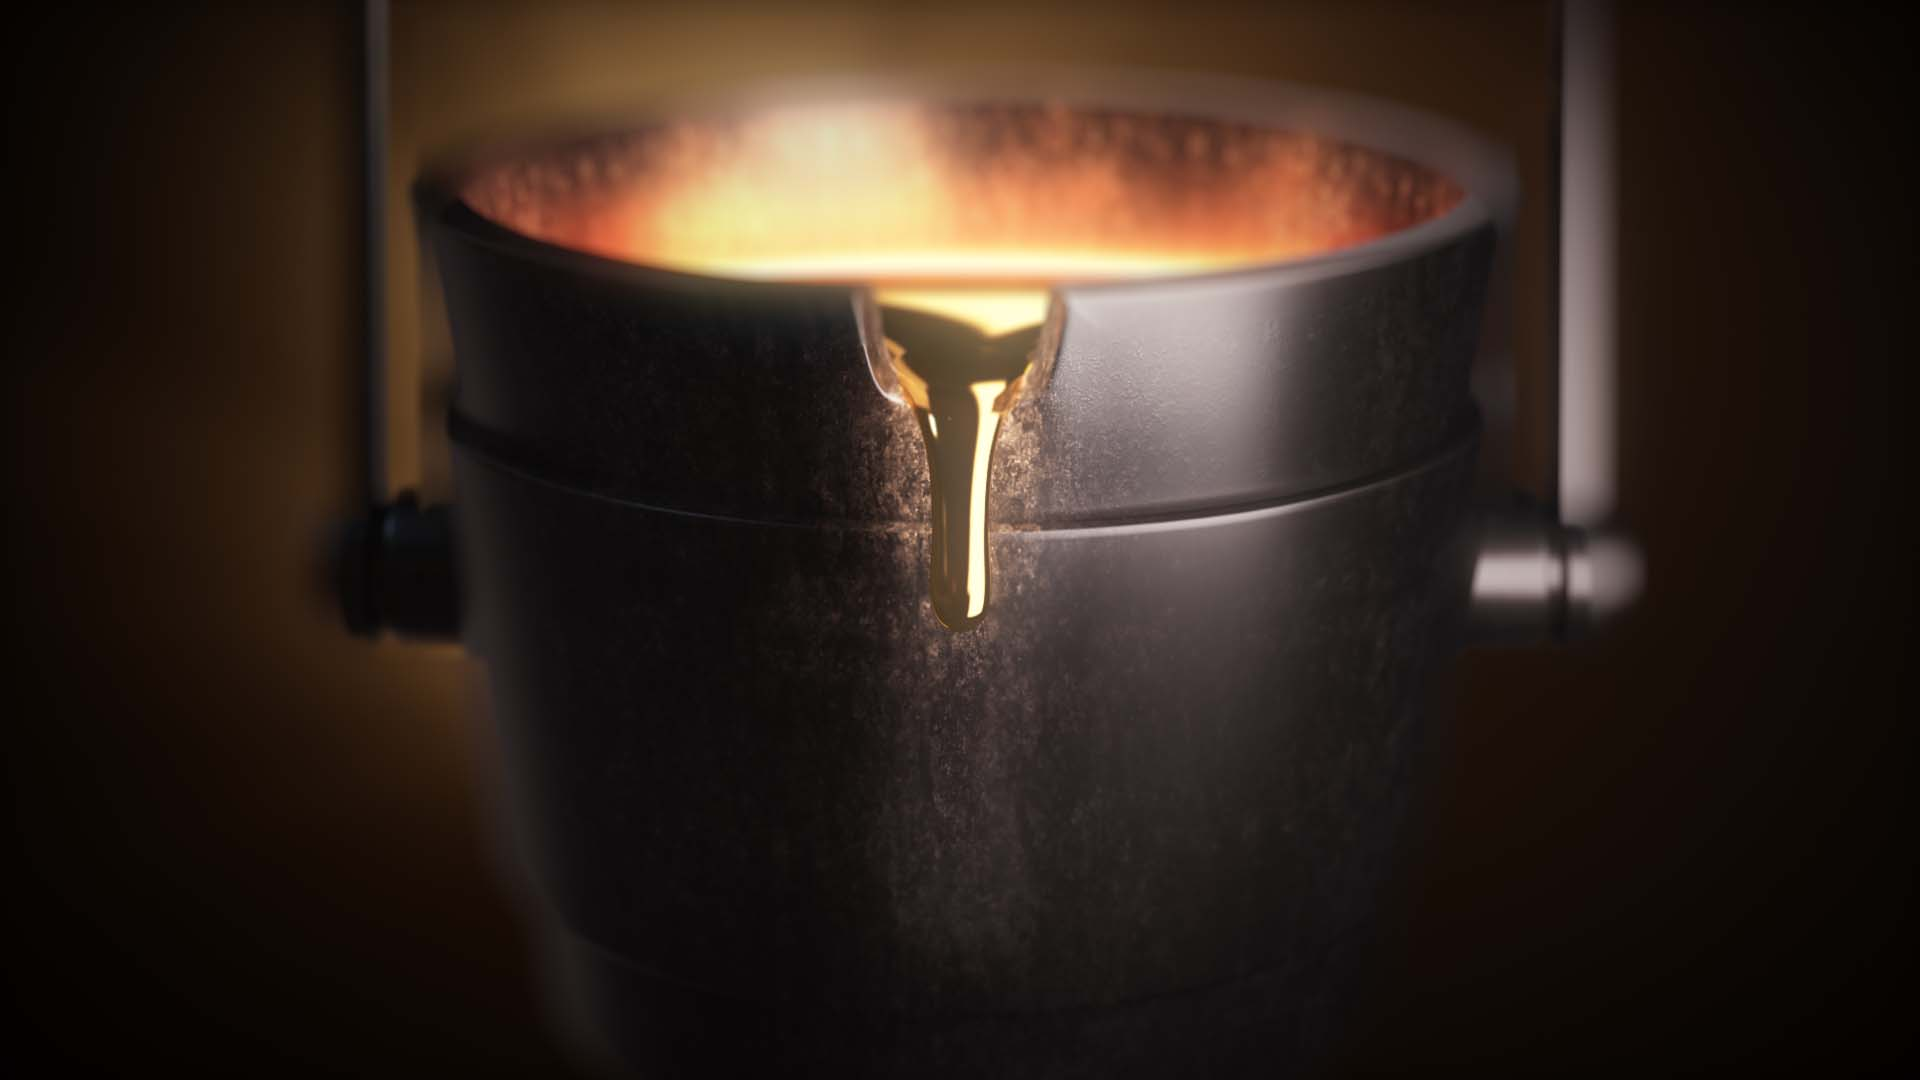 3D animated cast-iron bucket with liquid gold pouring from its spout.